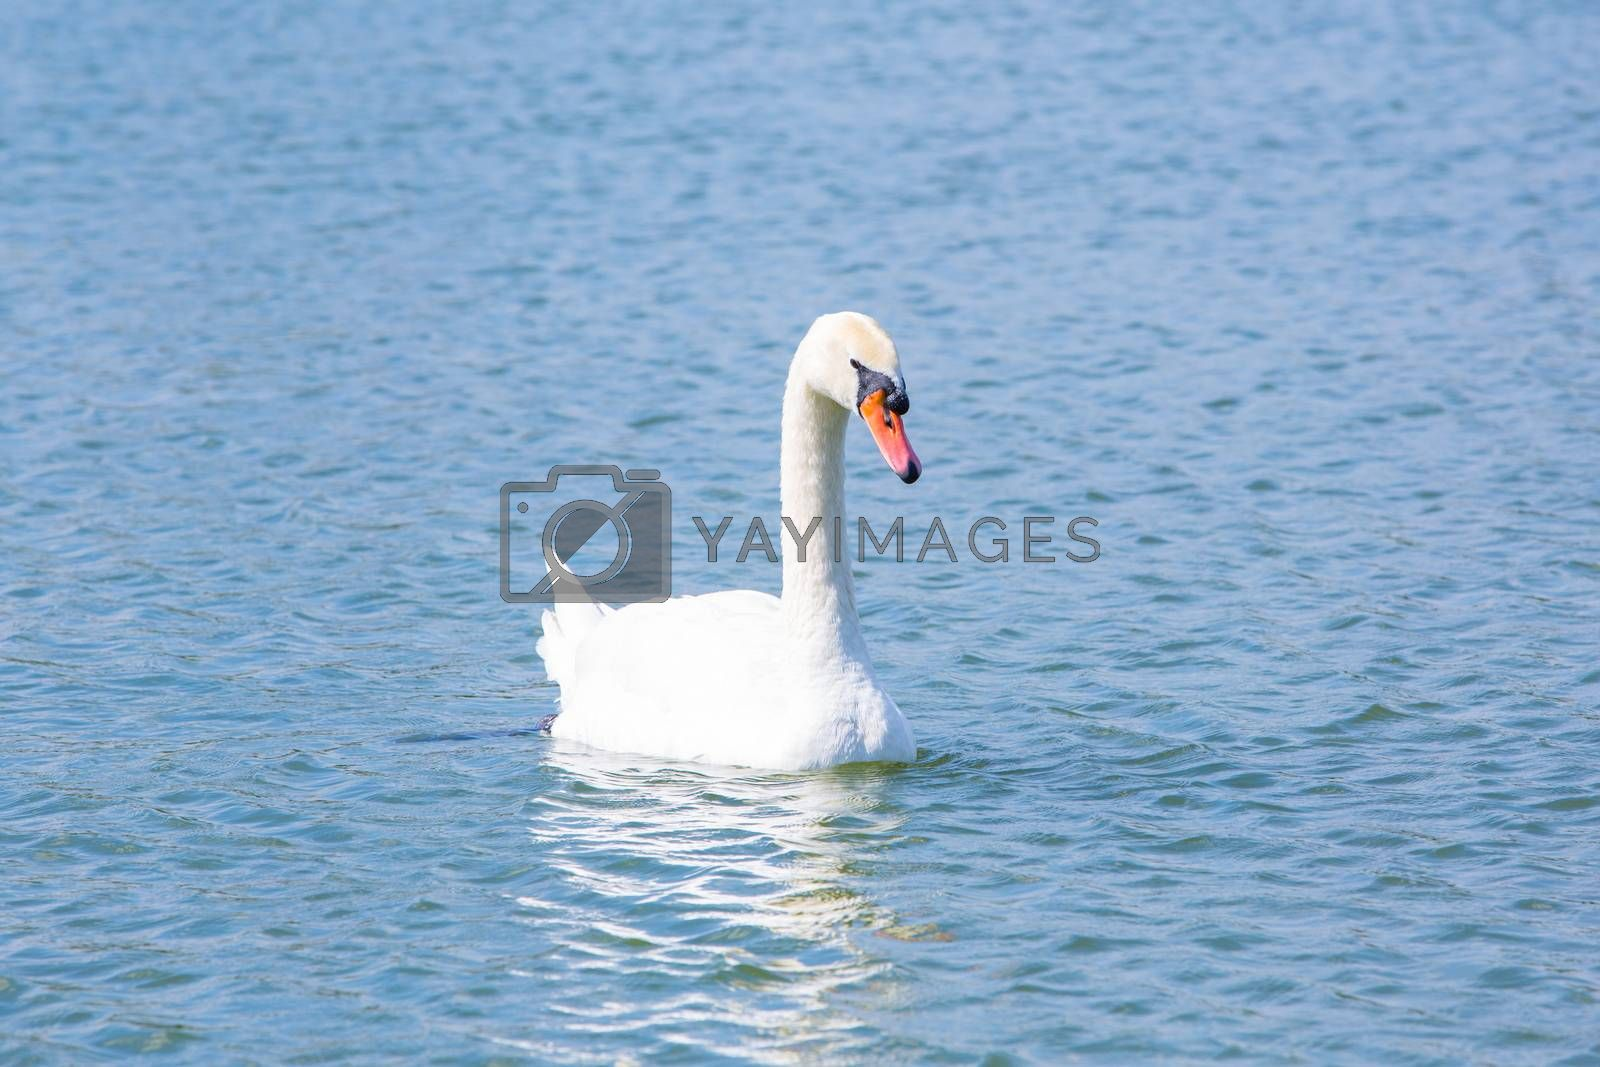 Royalty free image of Swan by tuchkay